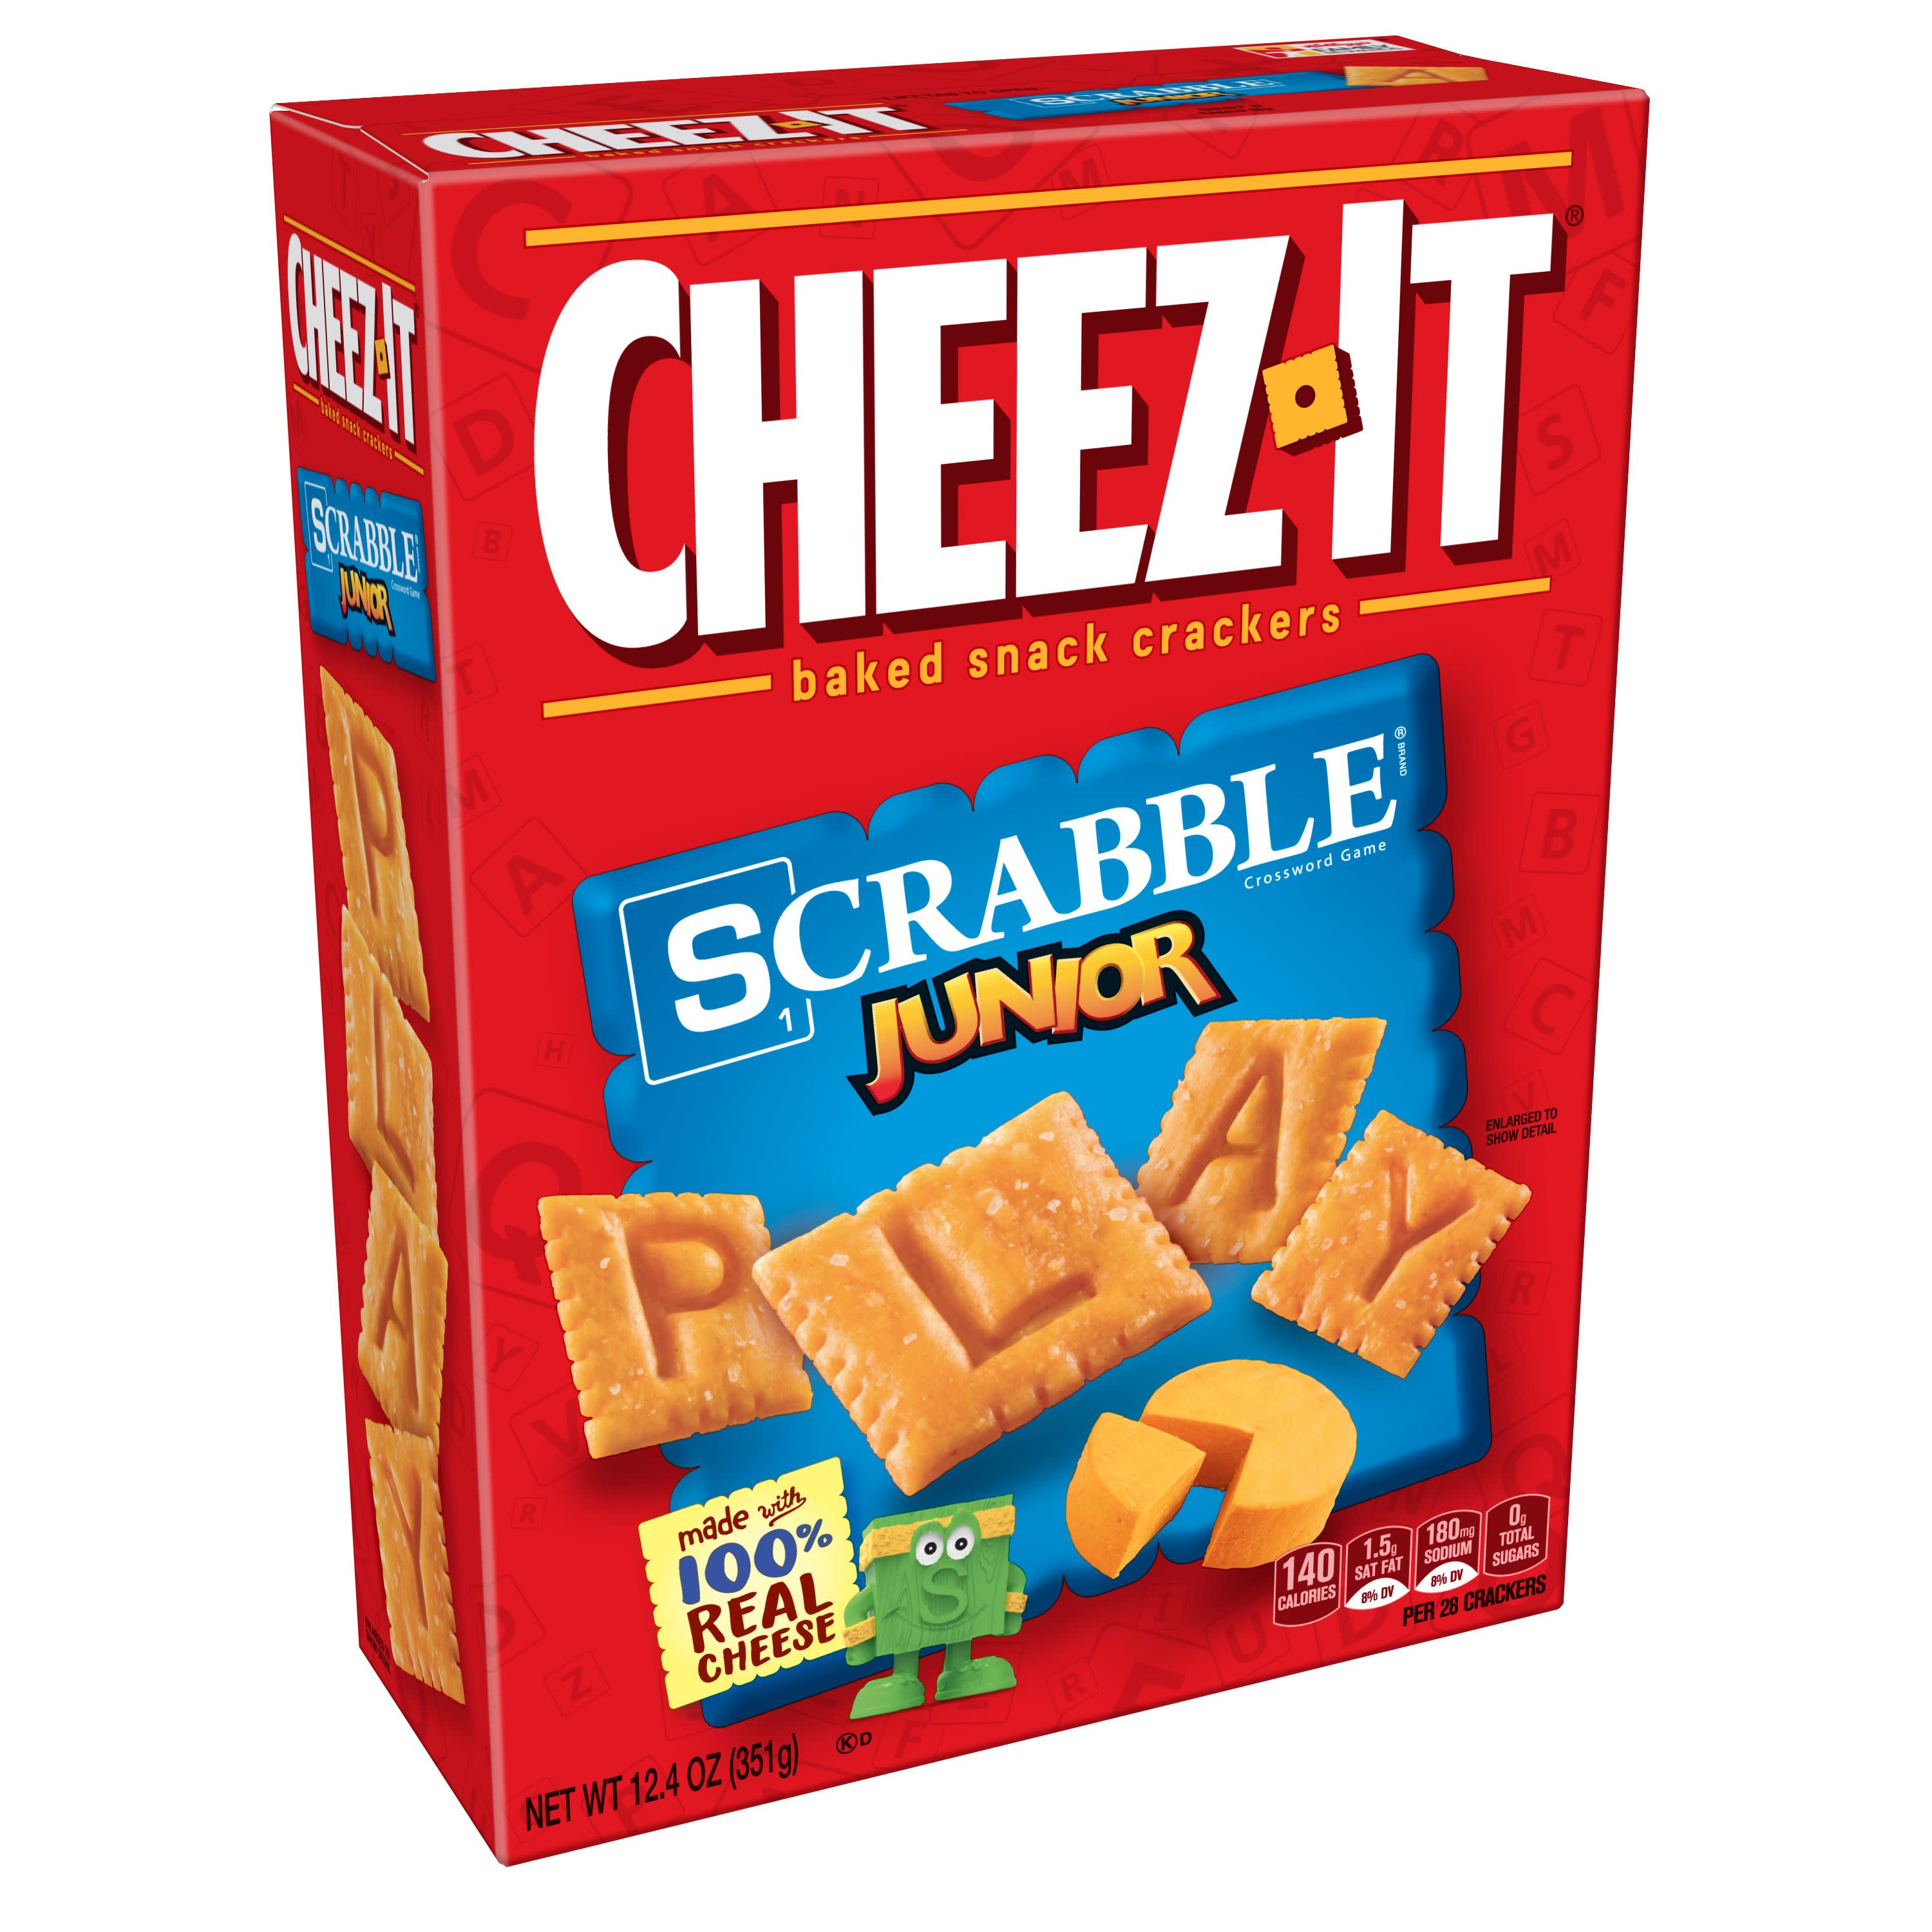 (2 Pack) Cheez-It, Baked Snack Cheese Crackers, Scrabble Junior, 12.4 oz